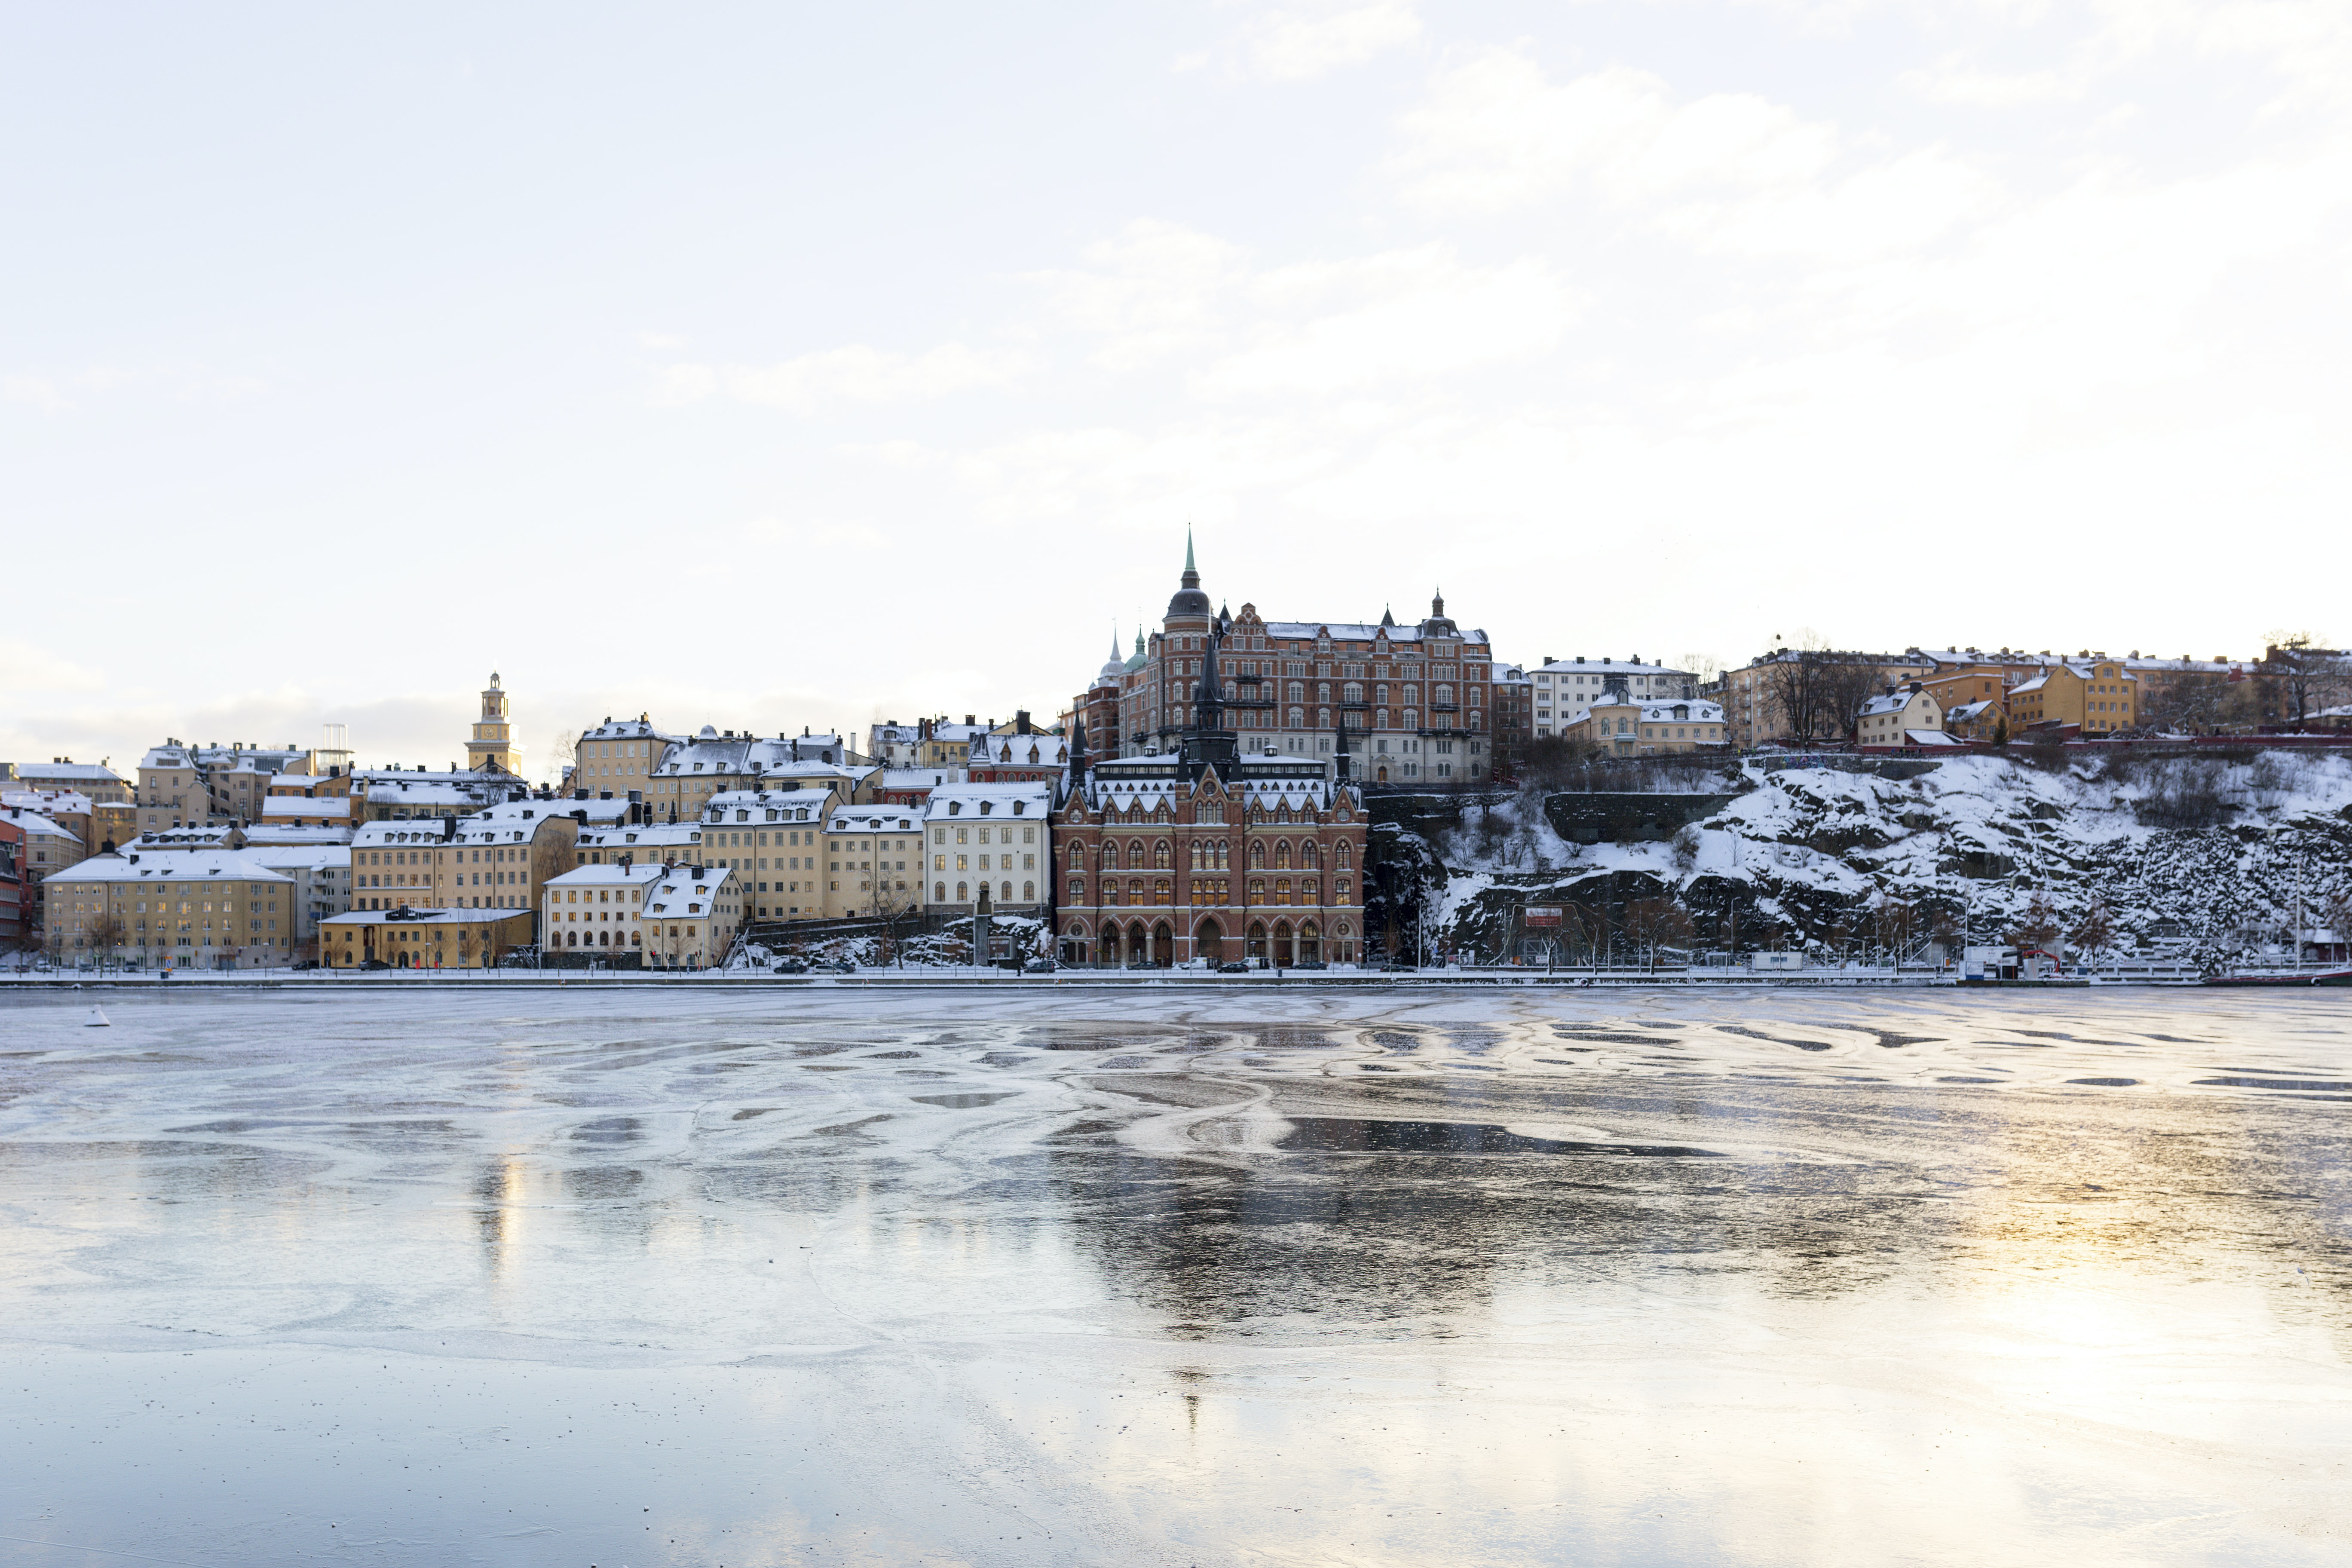 A Swedish city with tan and brown buildings by the shore of a frozen lake